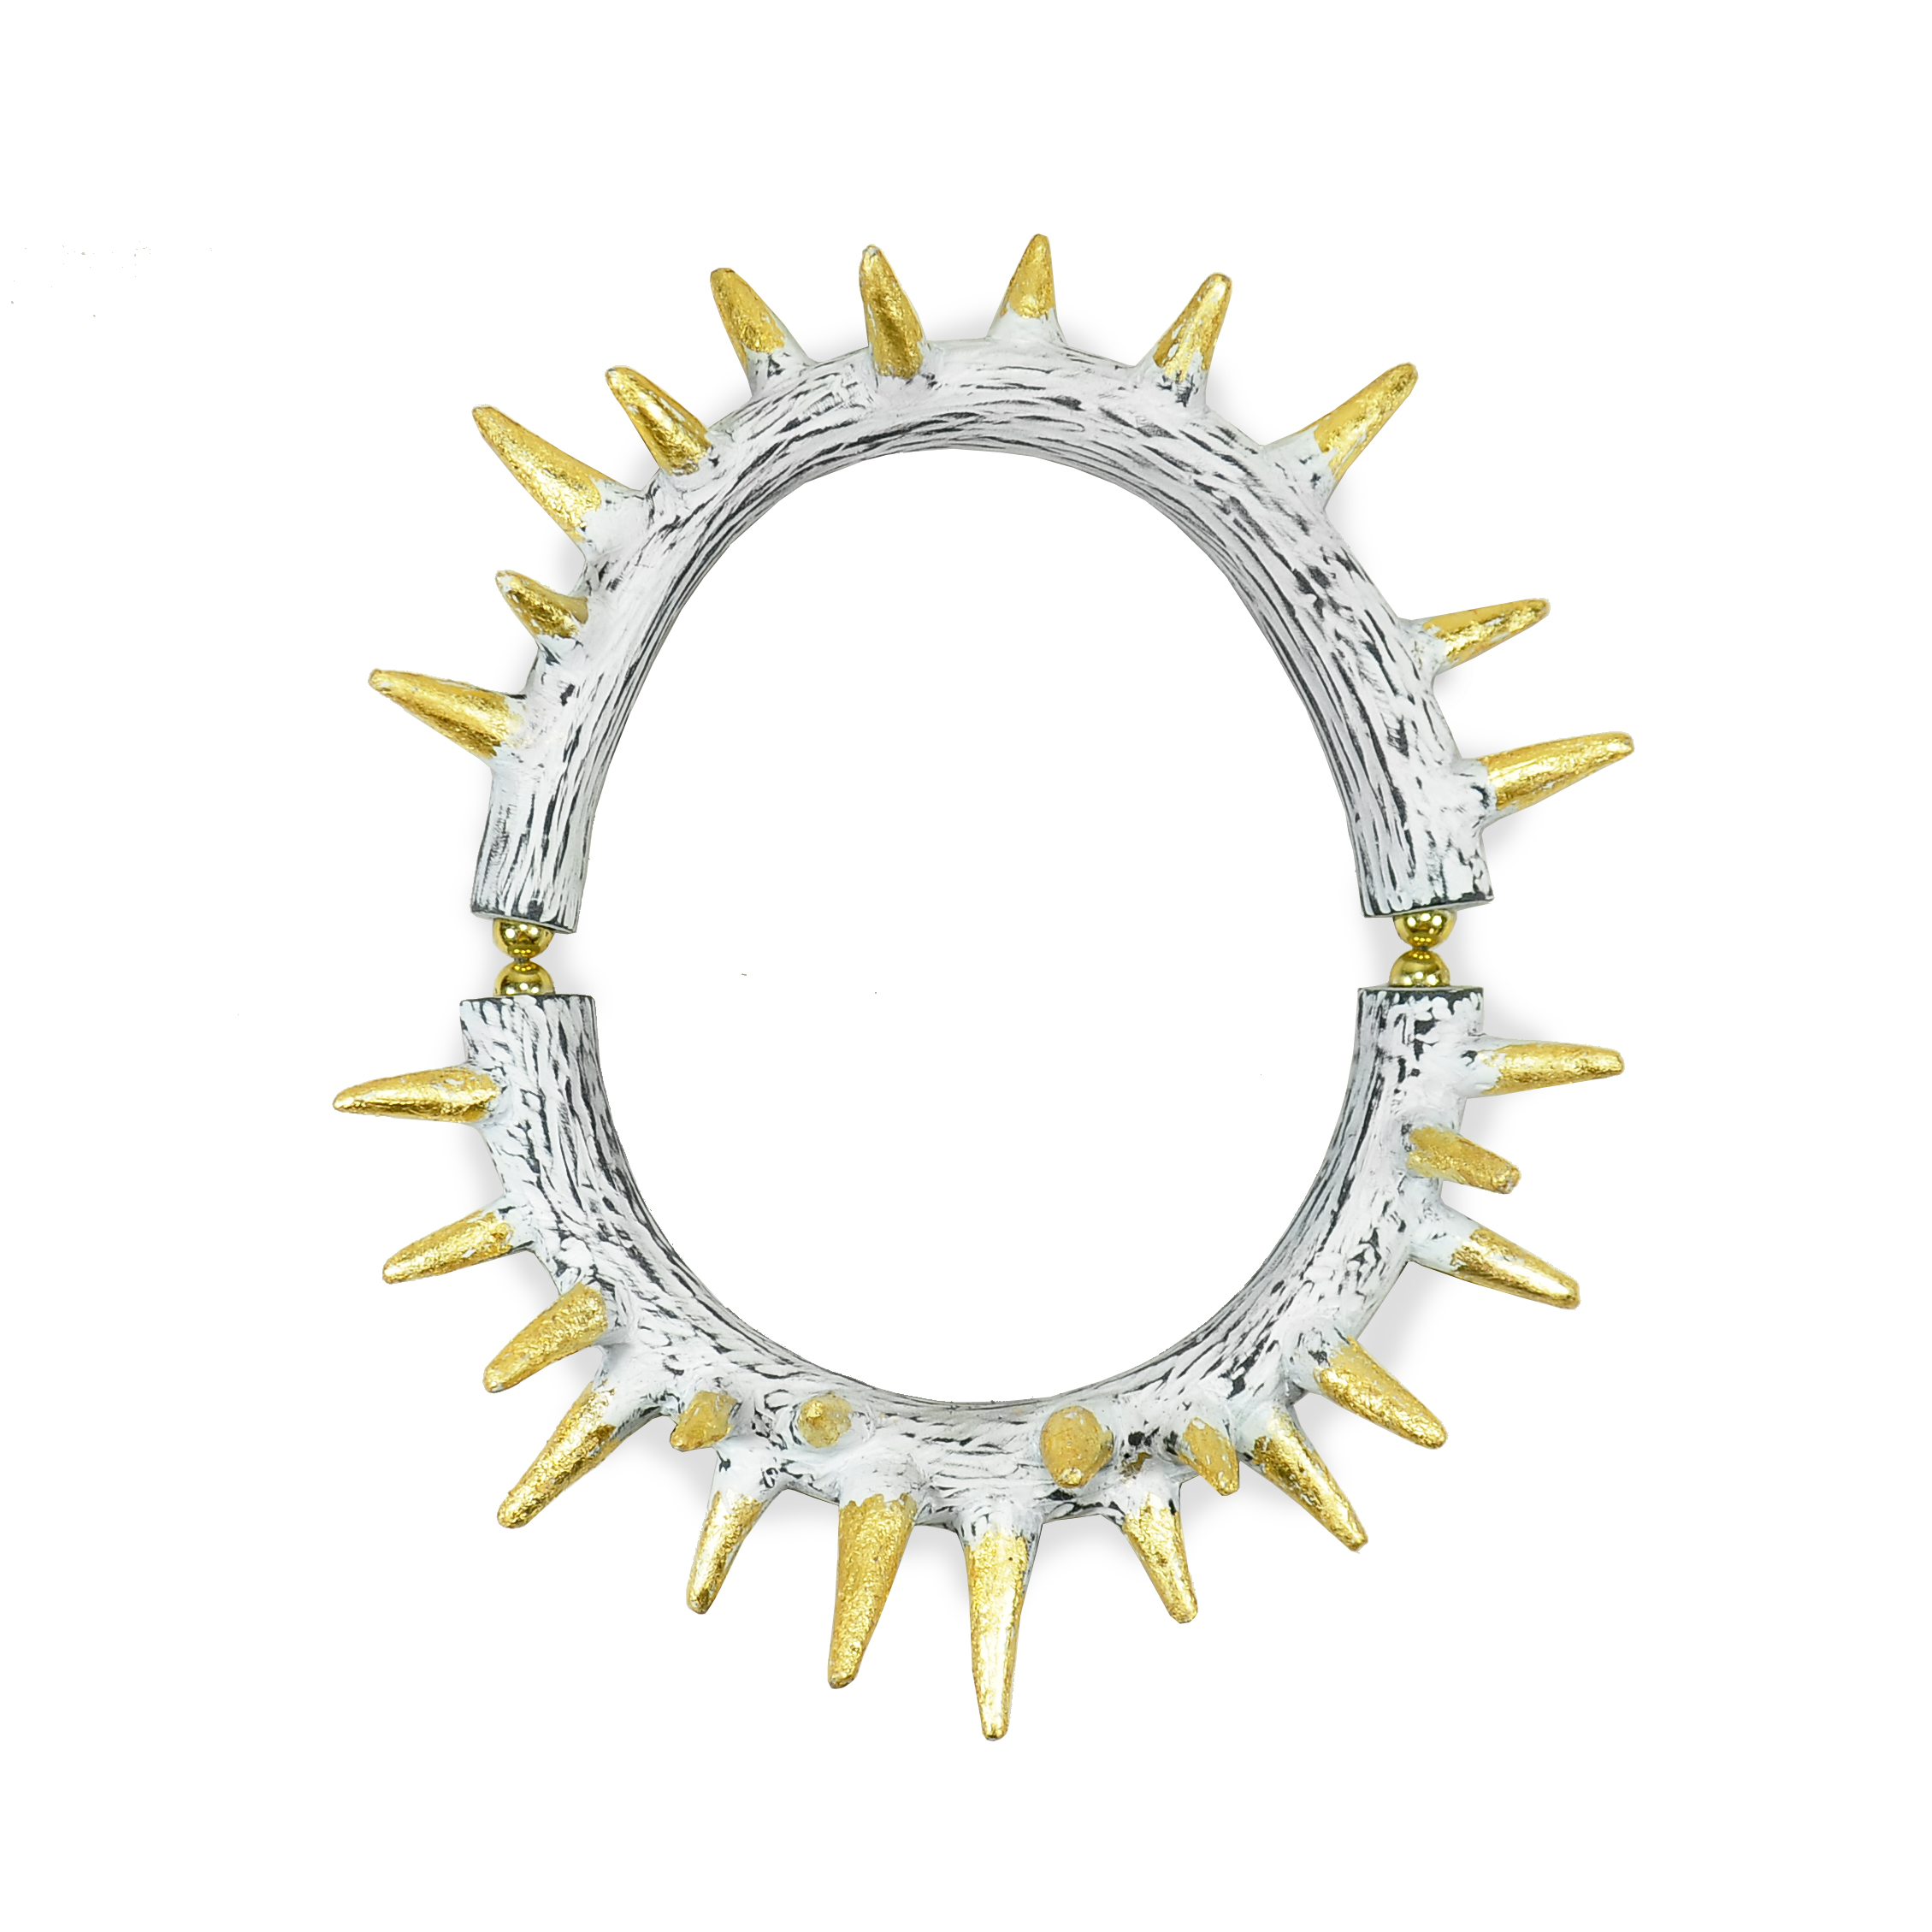 Locatelli 5_Golden Thorny Crown.jpg